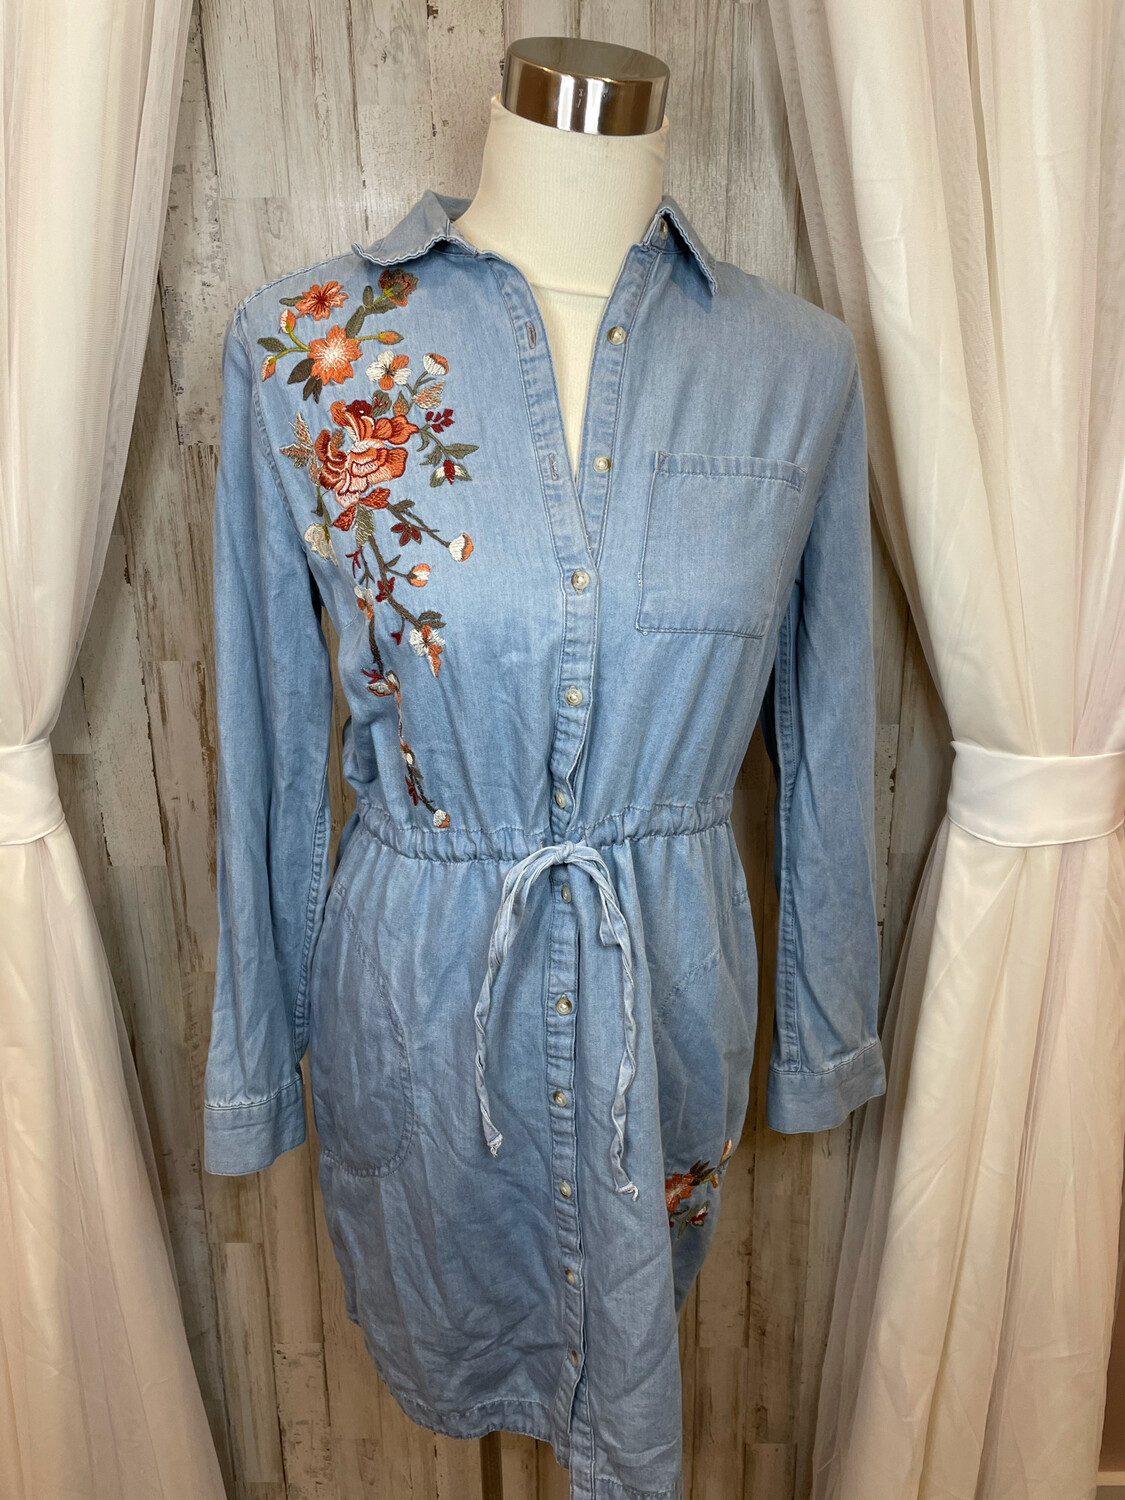 A.N.A. Chambray Floral Embroidered Drawstring Dress - S